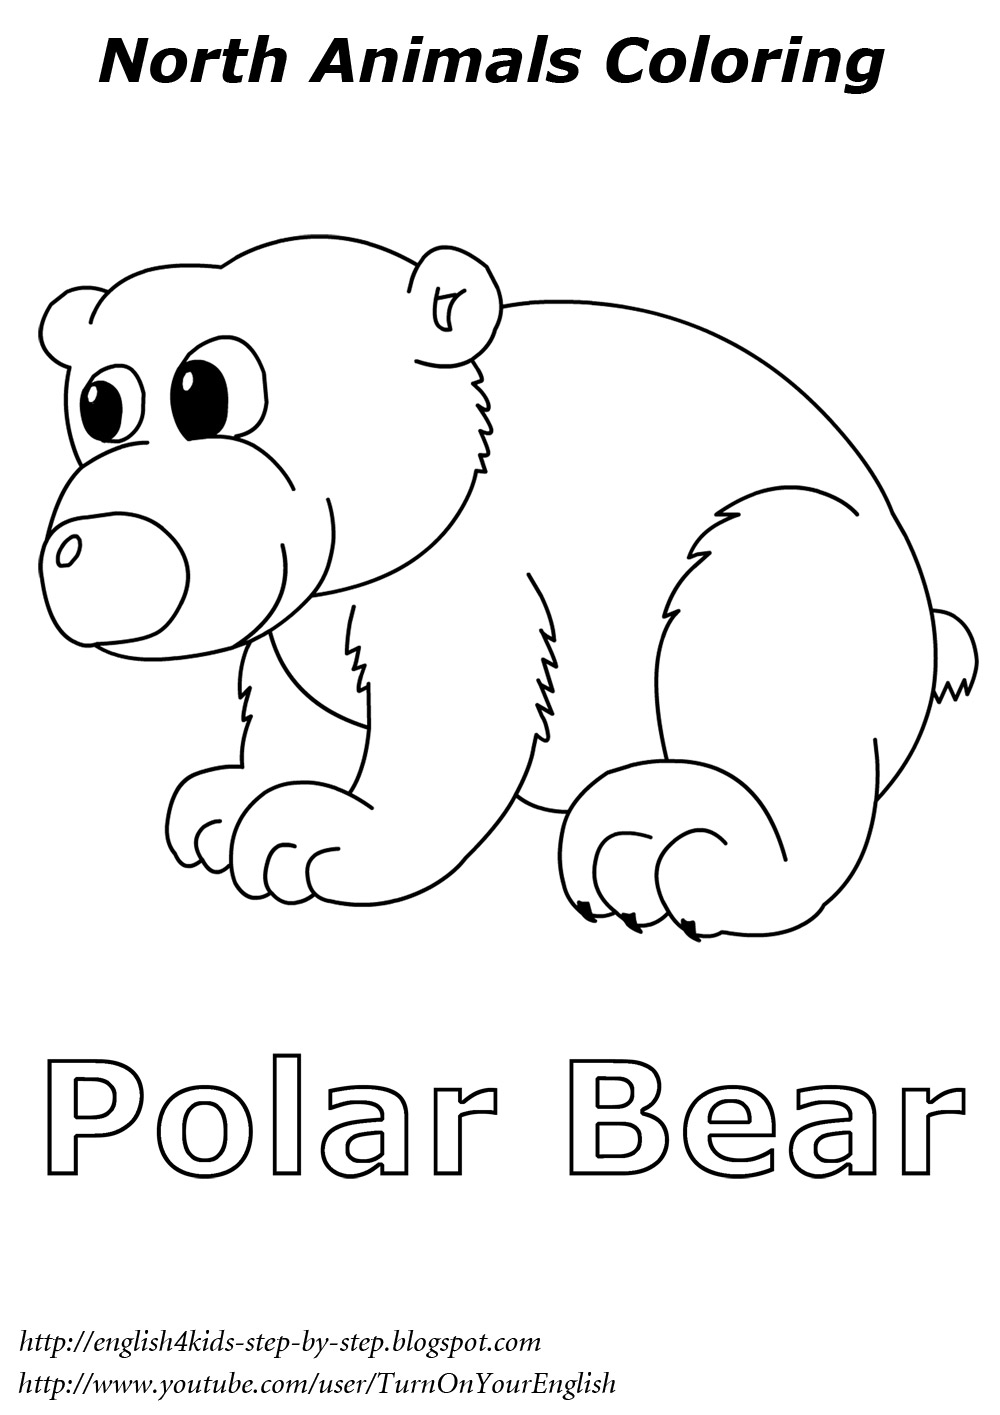 arctic animals coloring pages for preschoolers arctic animals coloring pages by the kinder kids tpt preschoolers pages animals for arctic coloring